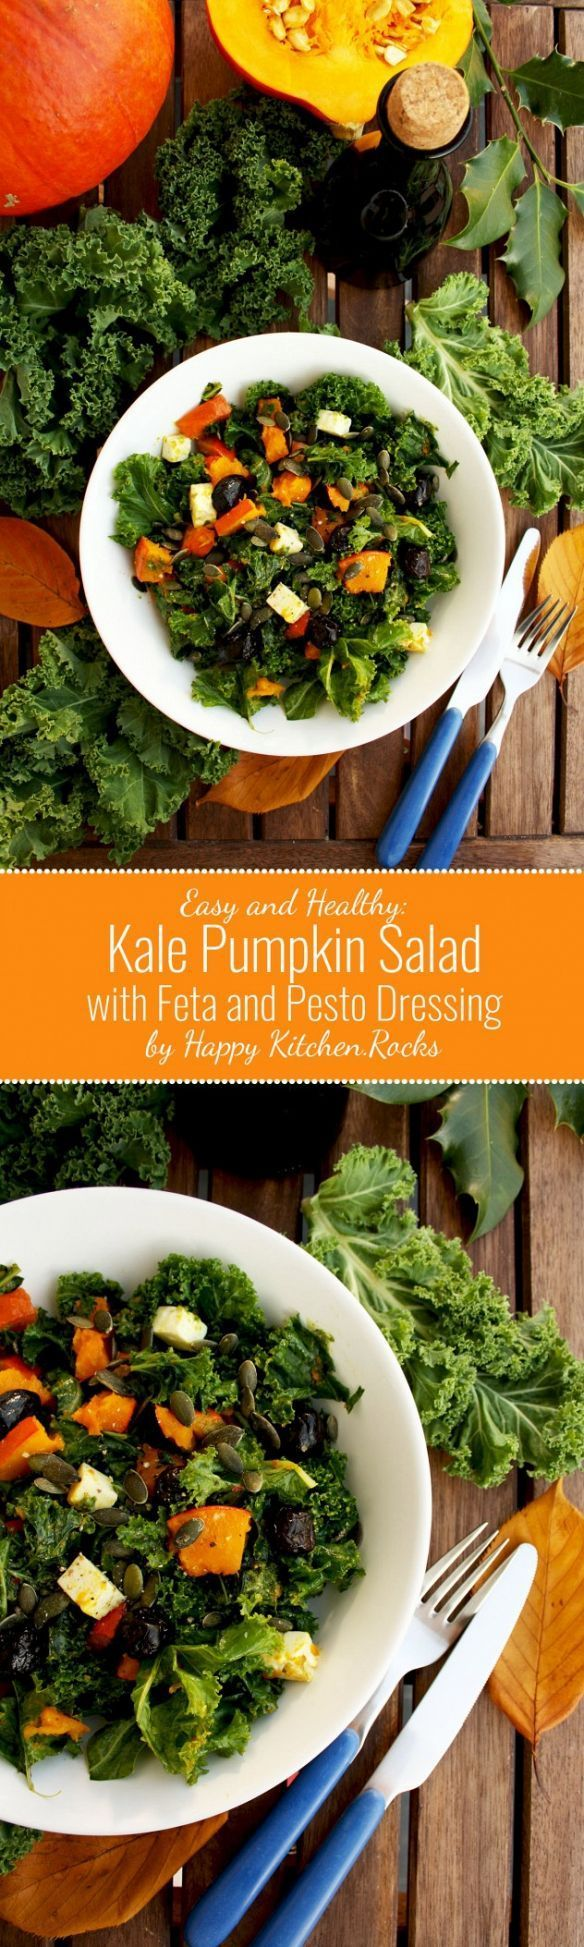 Kale Pumpkin Salad with Feta and Pesto Dressing: Easy-to-make, fast, healthy, gluten-free and delicious salad packed with fall flavors. Perfect seasonal salad for your Thanksgiving table!  Seasonal, paleo, low carb, low fat